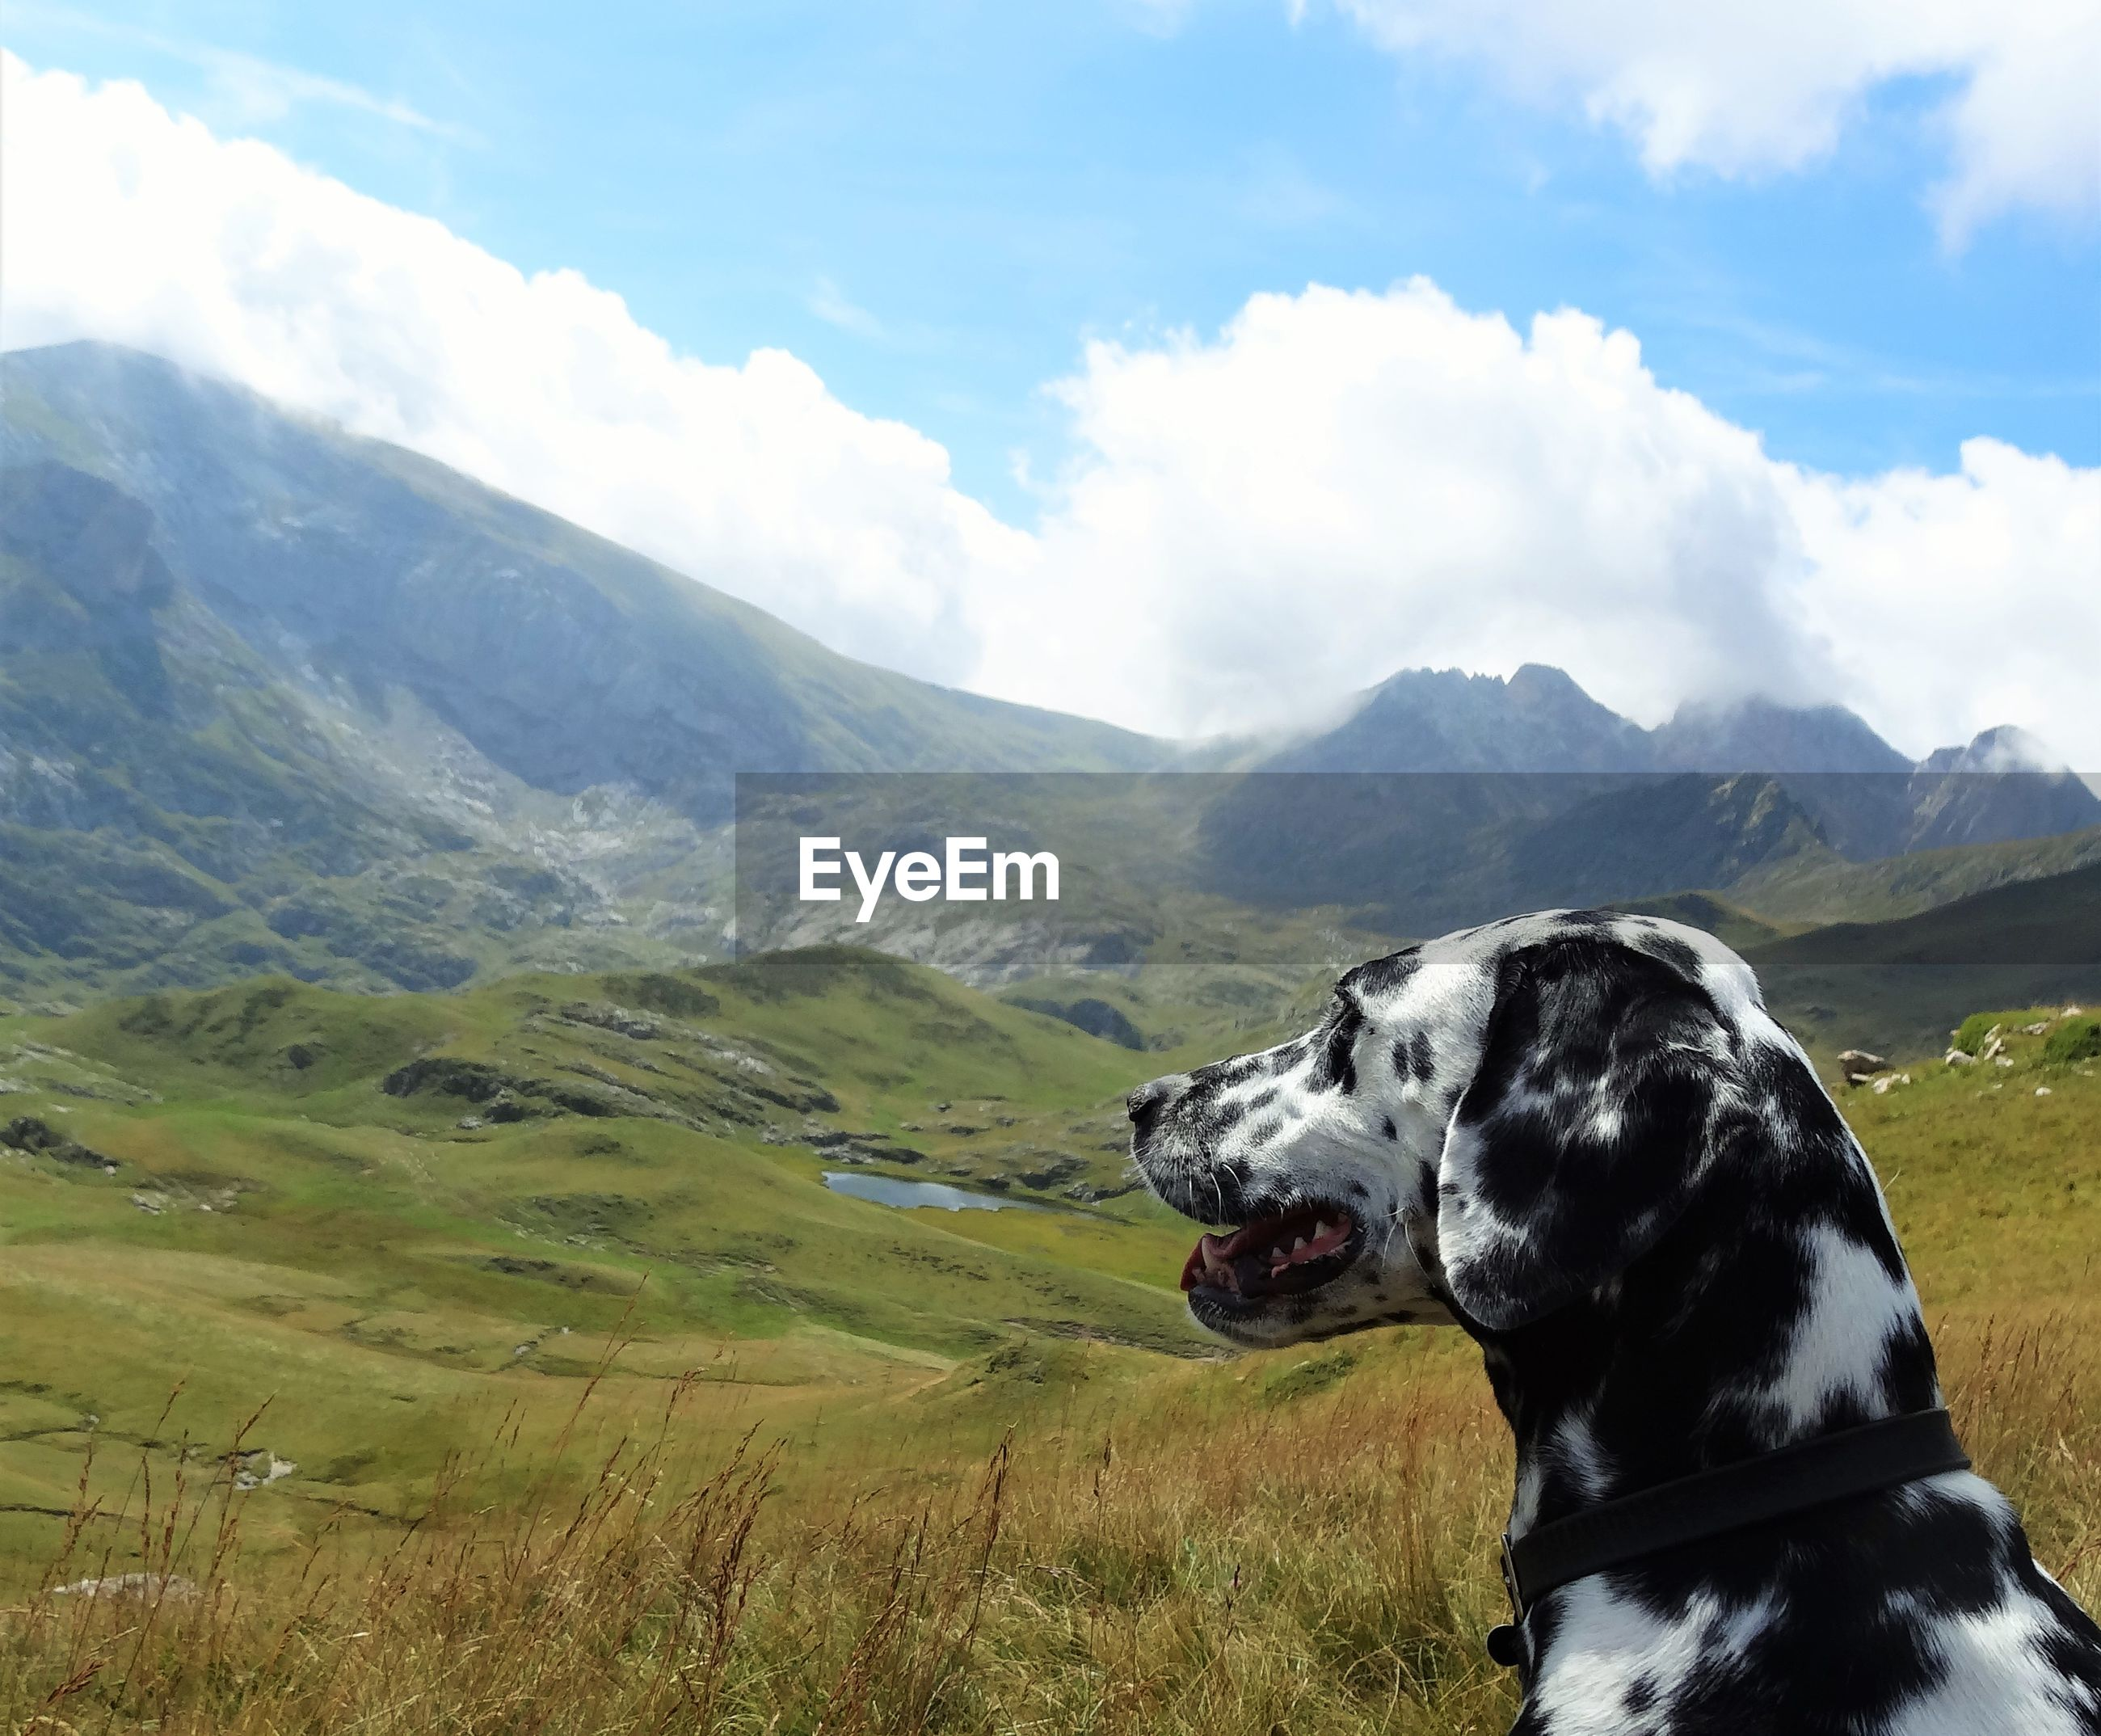 Dalmatian on grassy field looking at mountains against cloudy sky